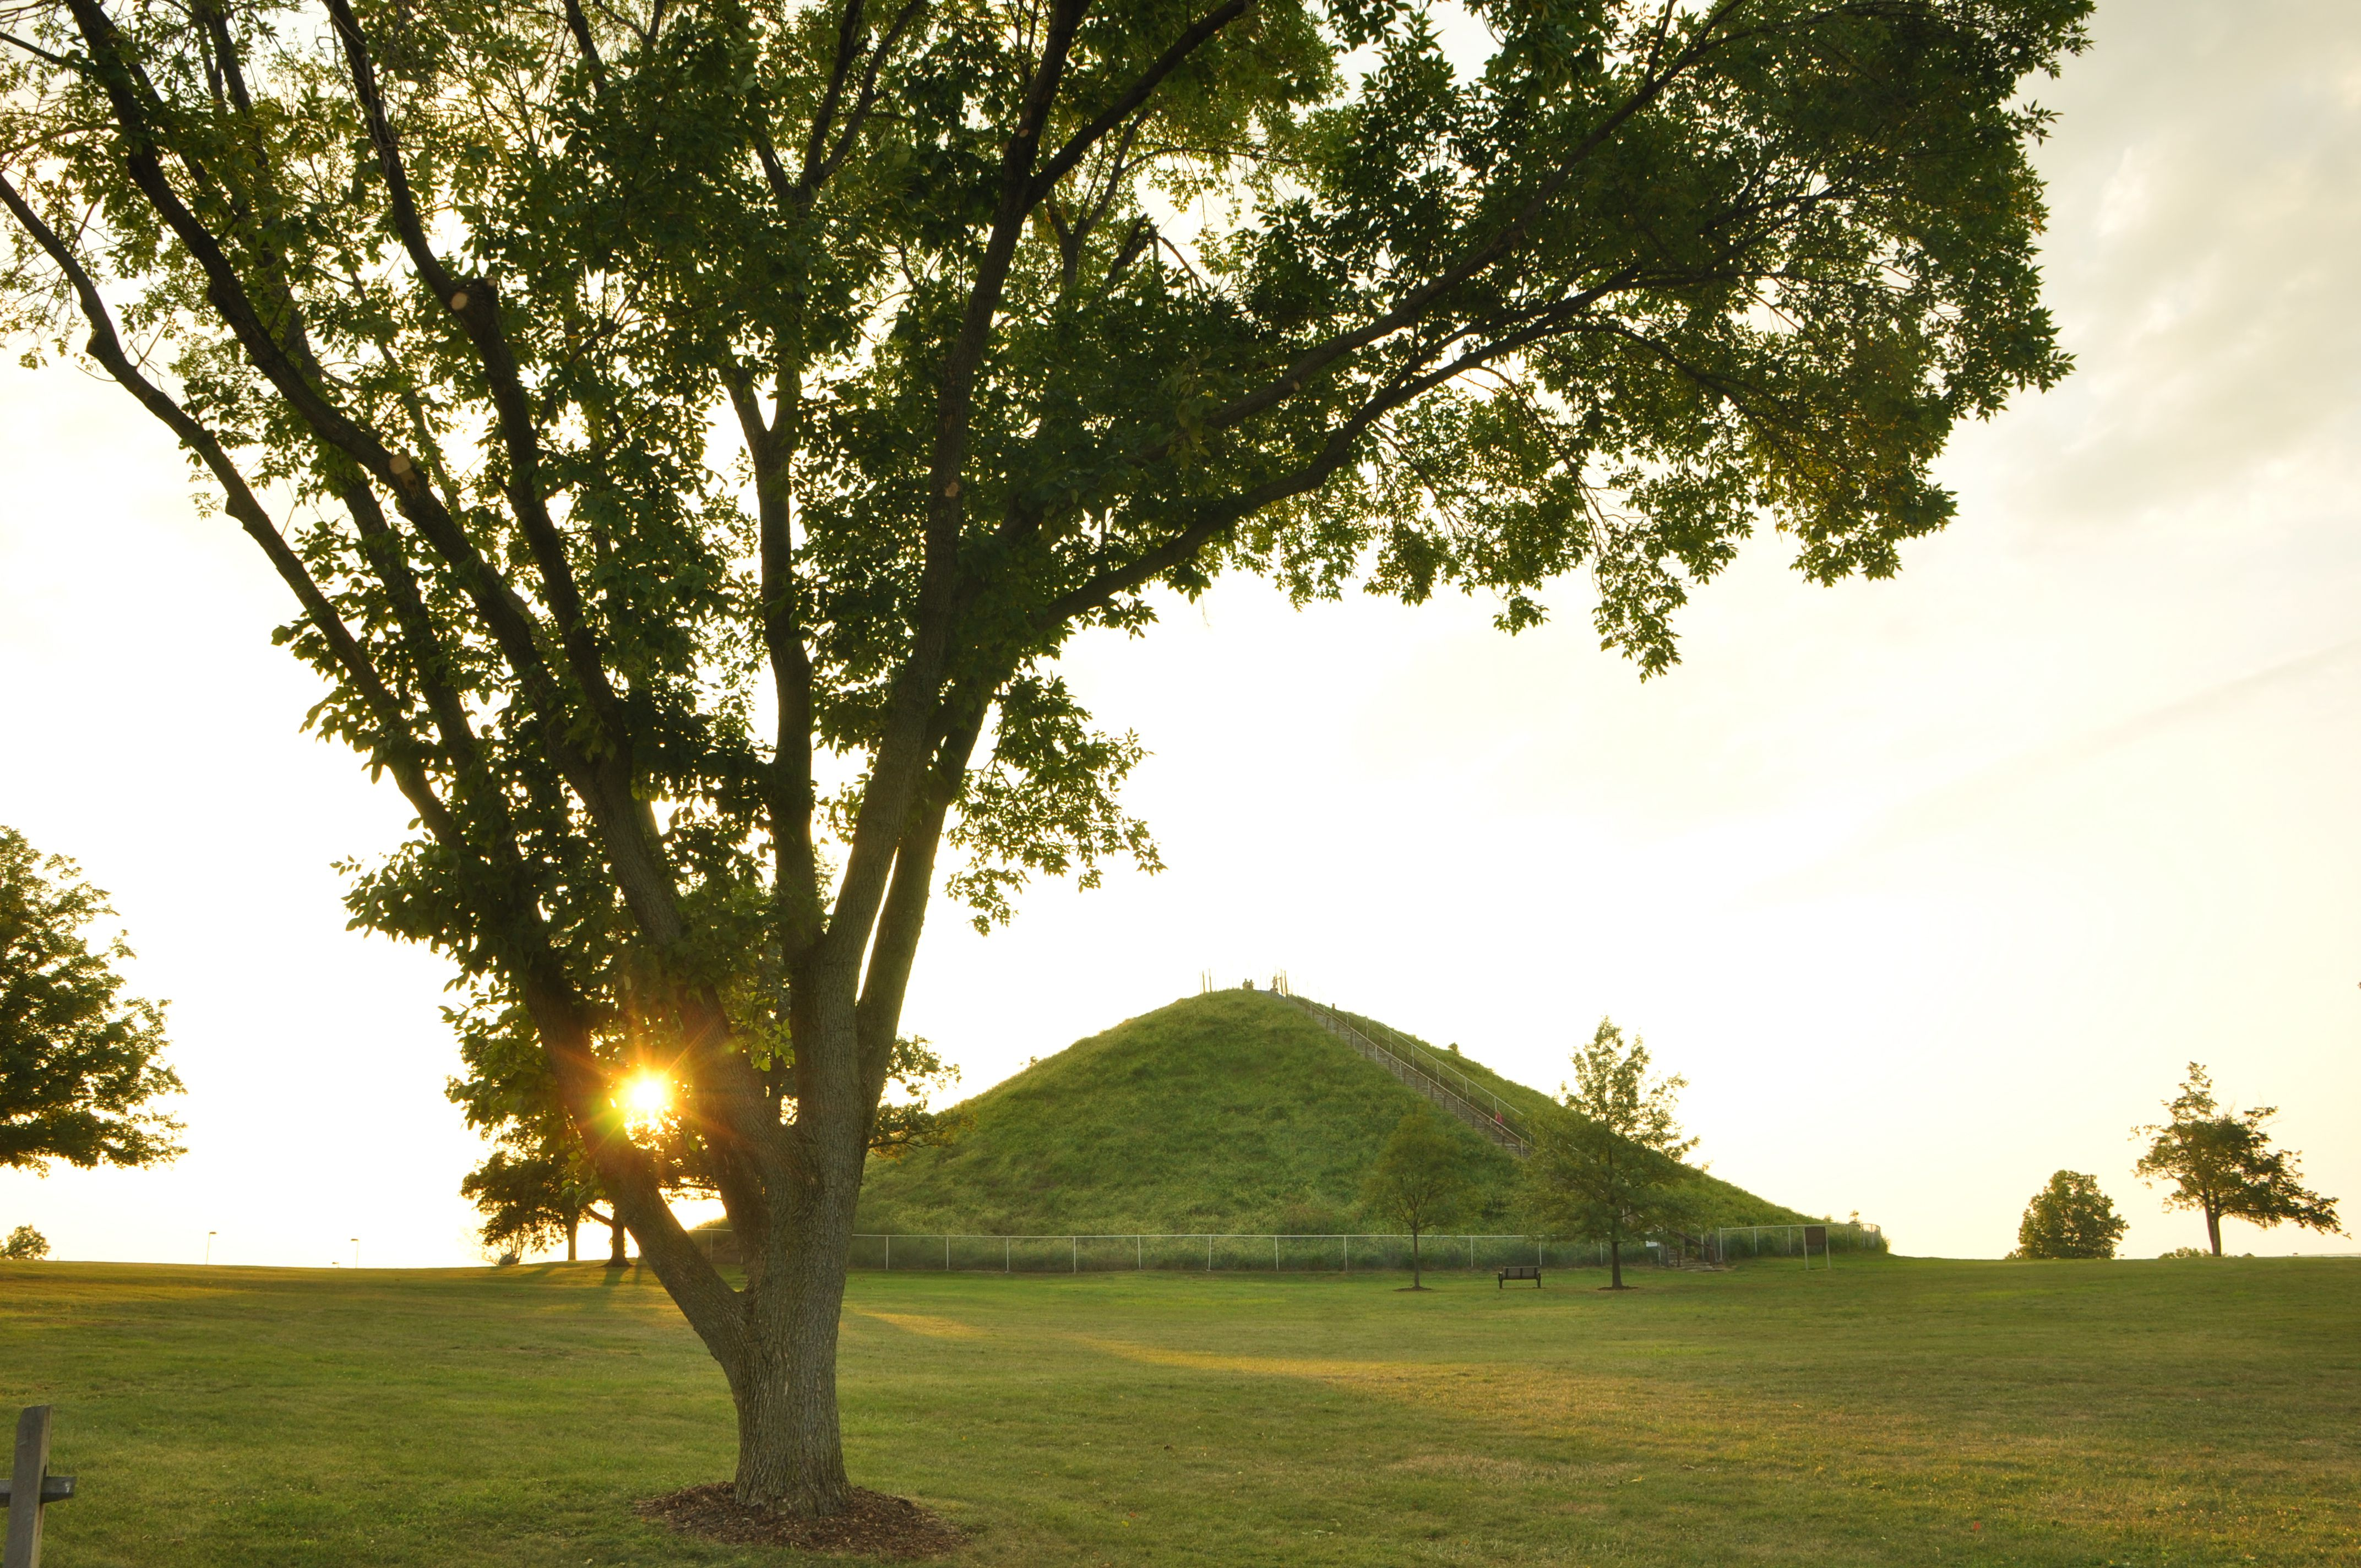 Ohio S Fascinating Indian Mounds